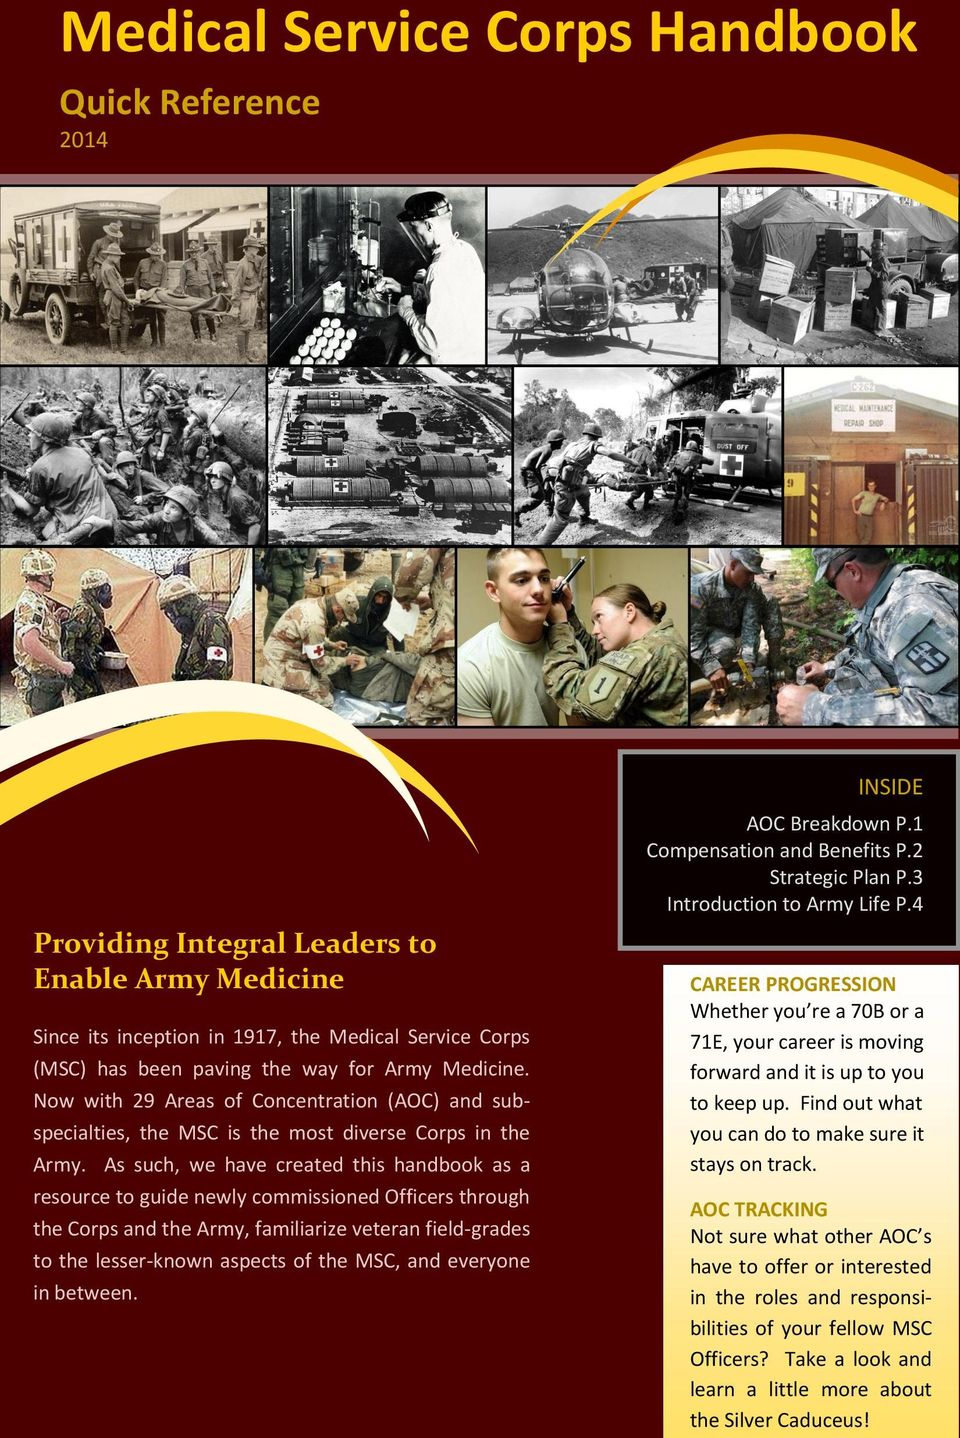 As such, we have created this handbook as a resource to guide newly commissioned Officers through the Corps and the Army, familiarize veteran field-grades to the lesser-known aspects of the MSC, and